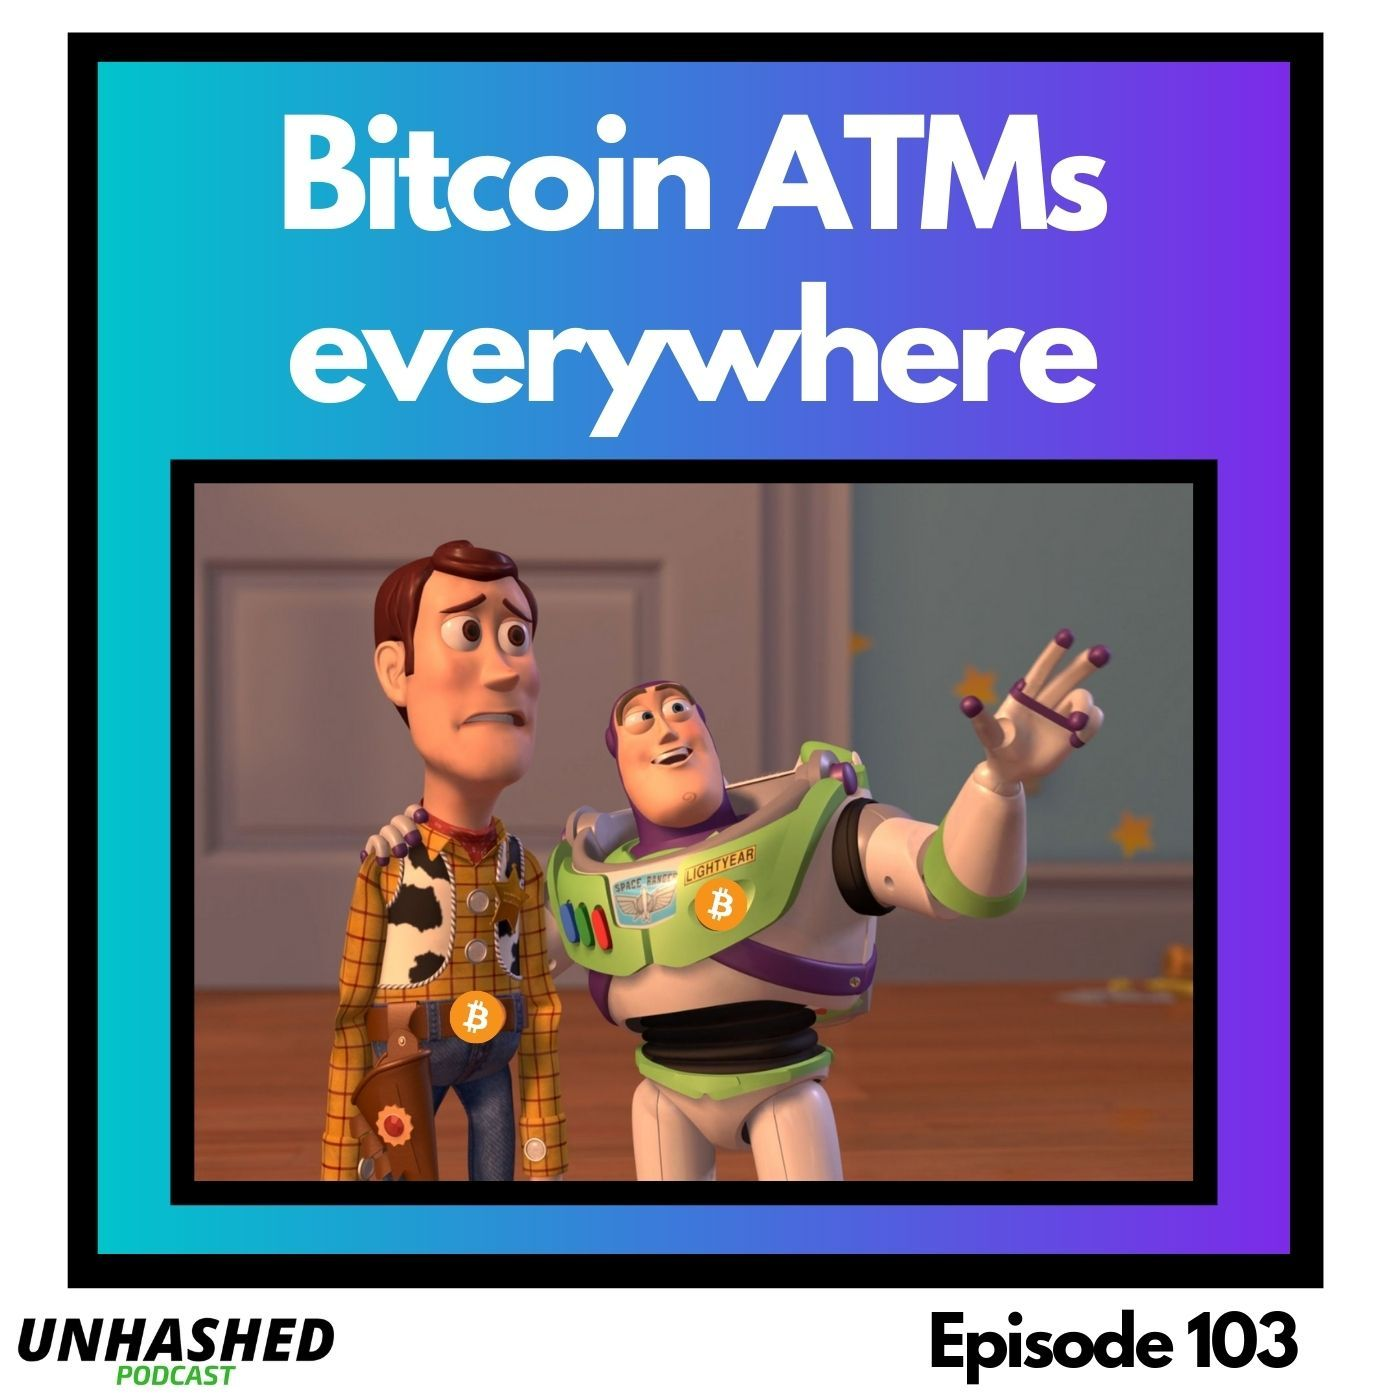 Bitcoin ATMs everywhere